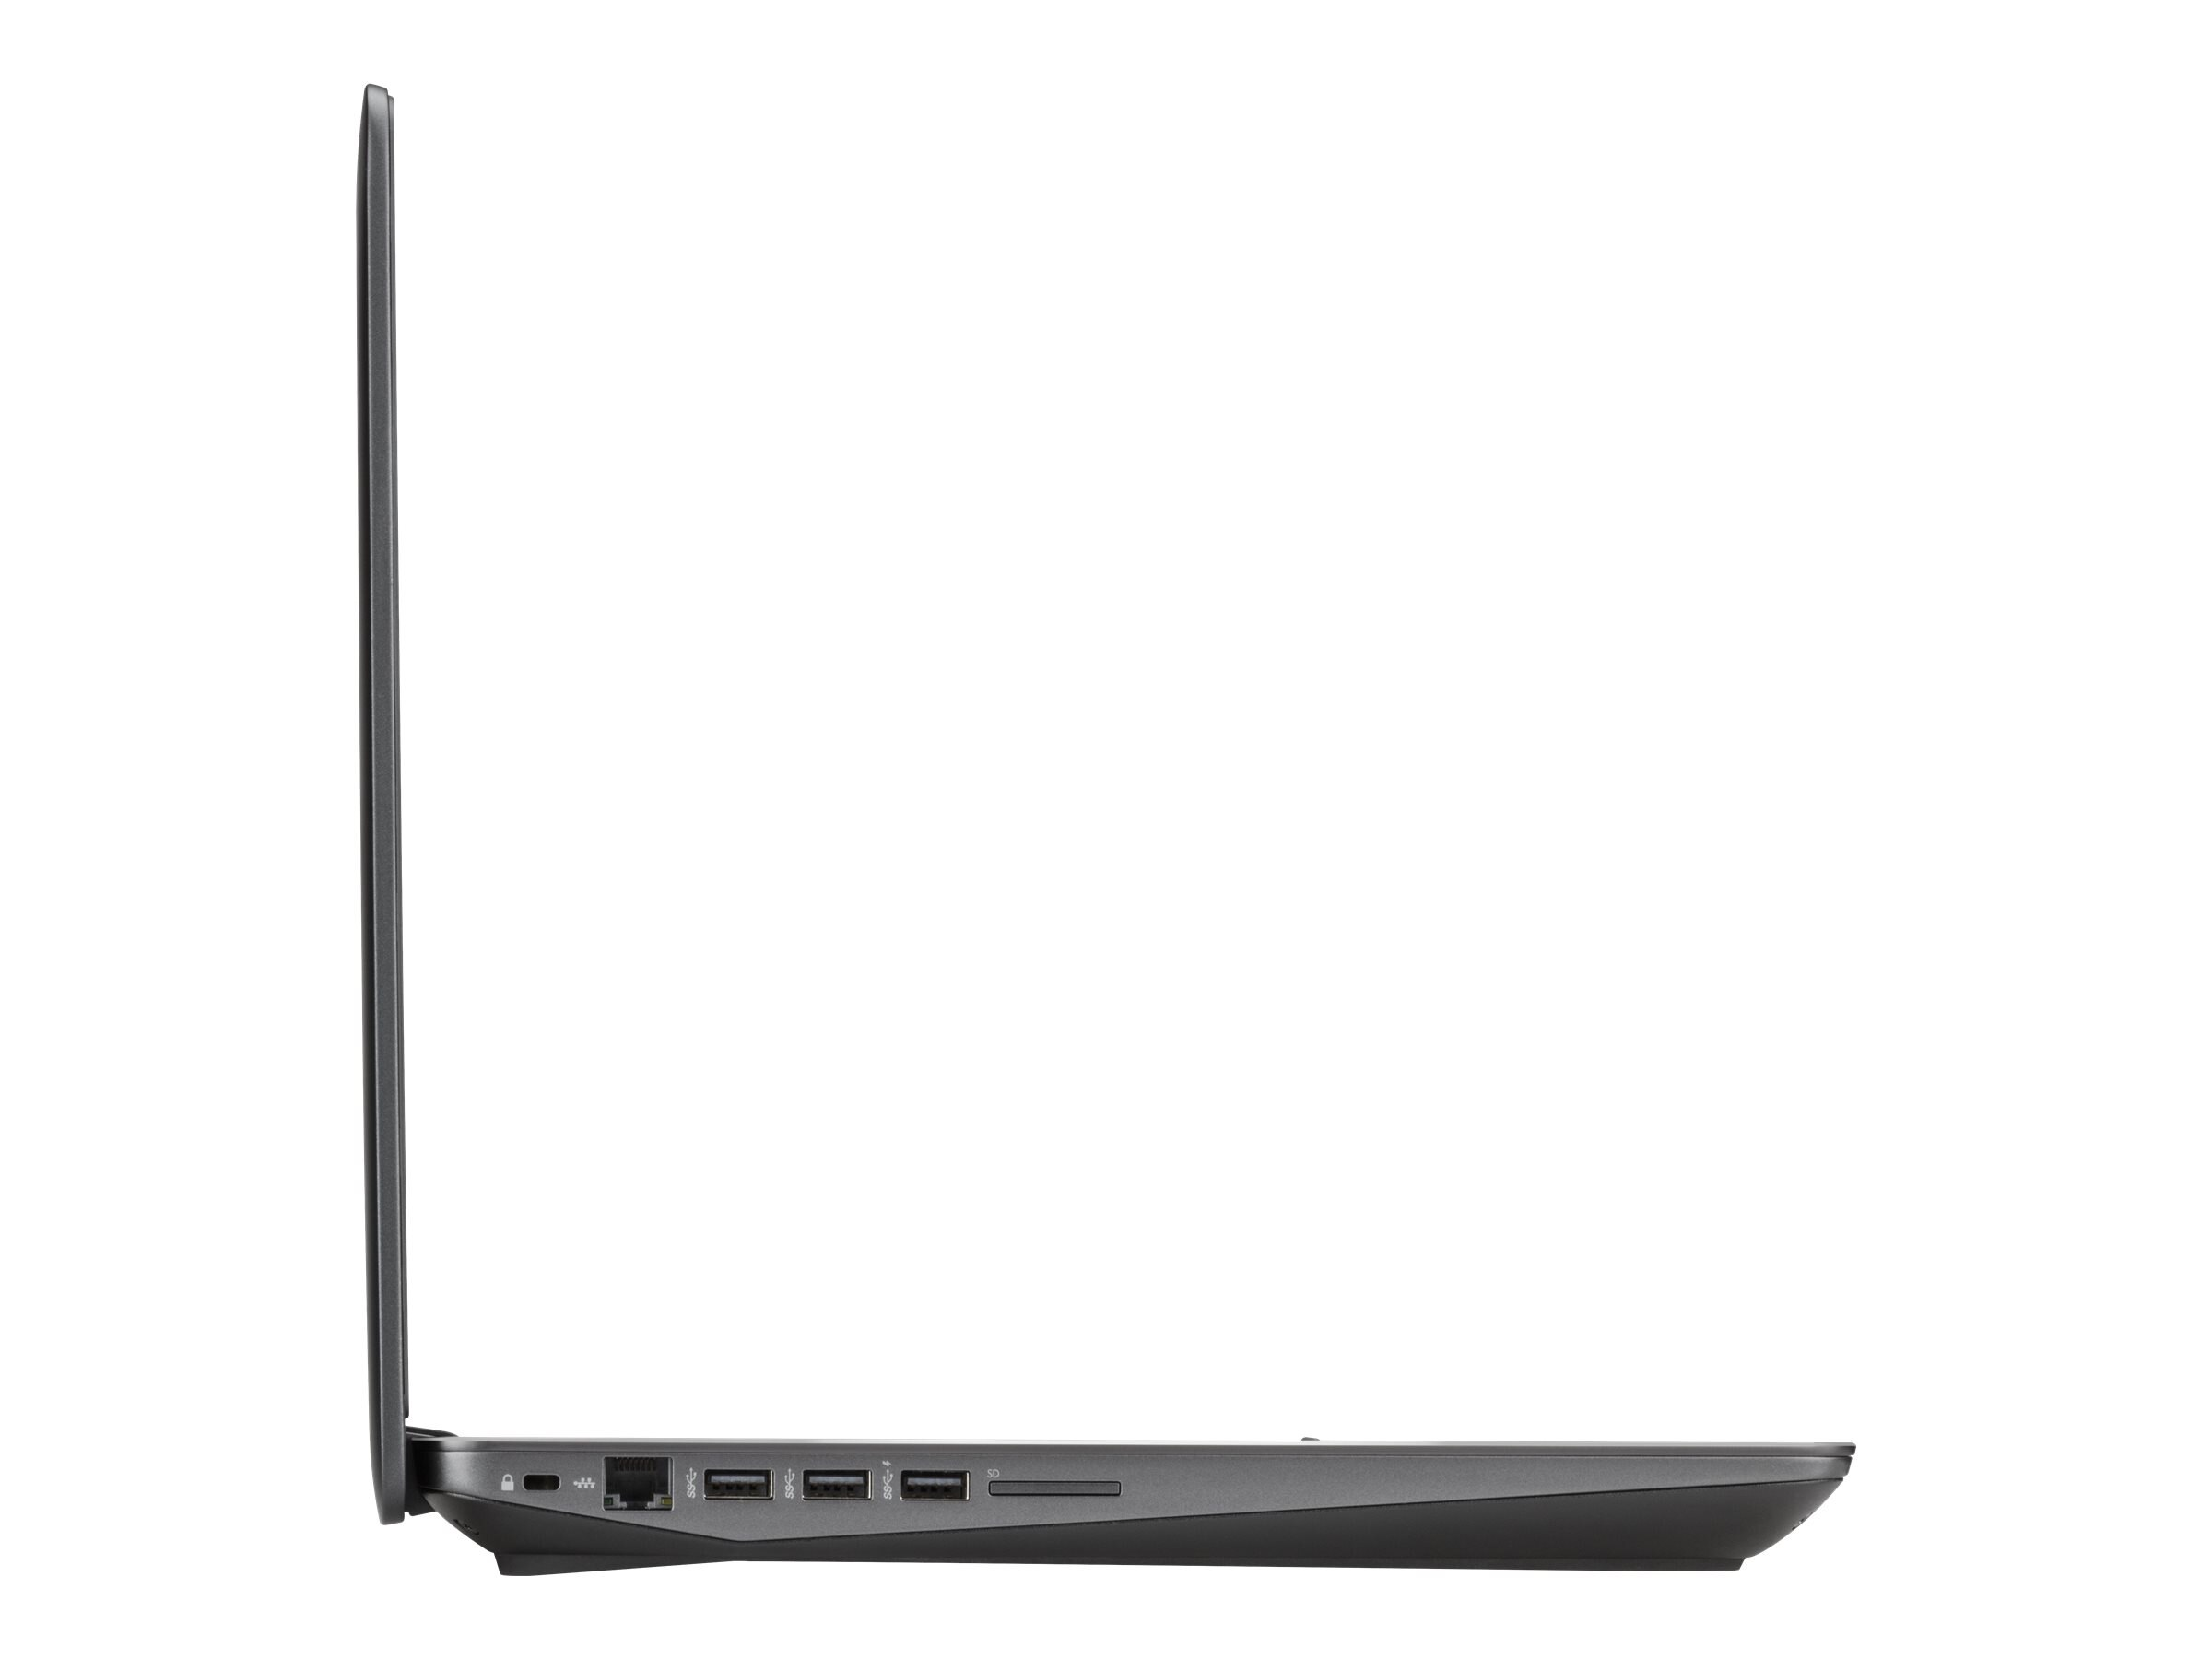 HP ZBook 17 G3 Core i7-6820HQ 2.7GHz 16GB 256GB SSD ac BT FR WC M3000M 17.3 FHD W7P64-W10P, V2D20AW#ABA